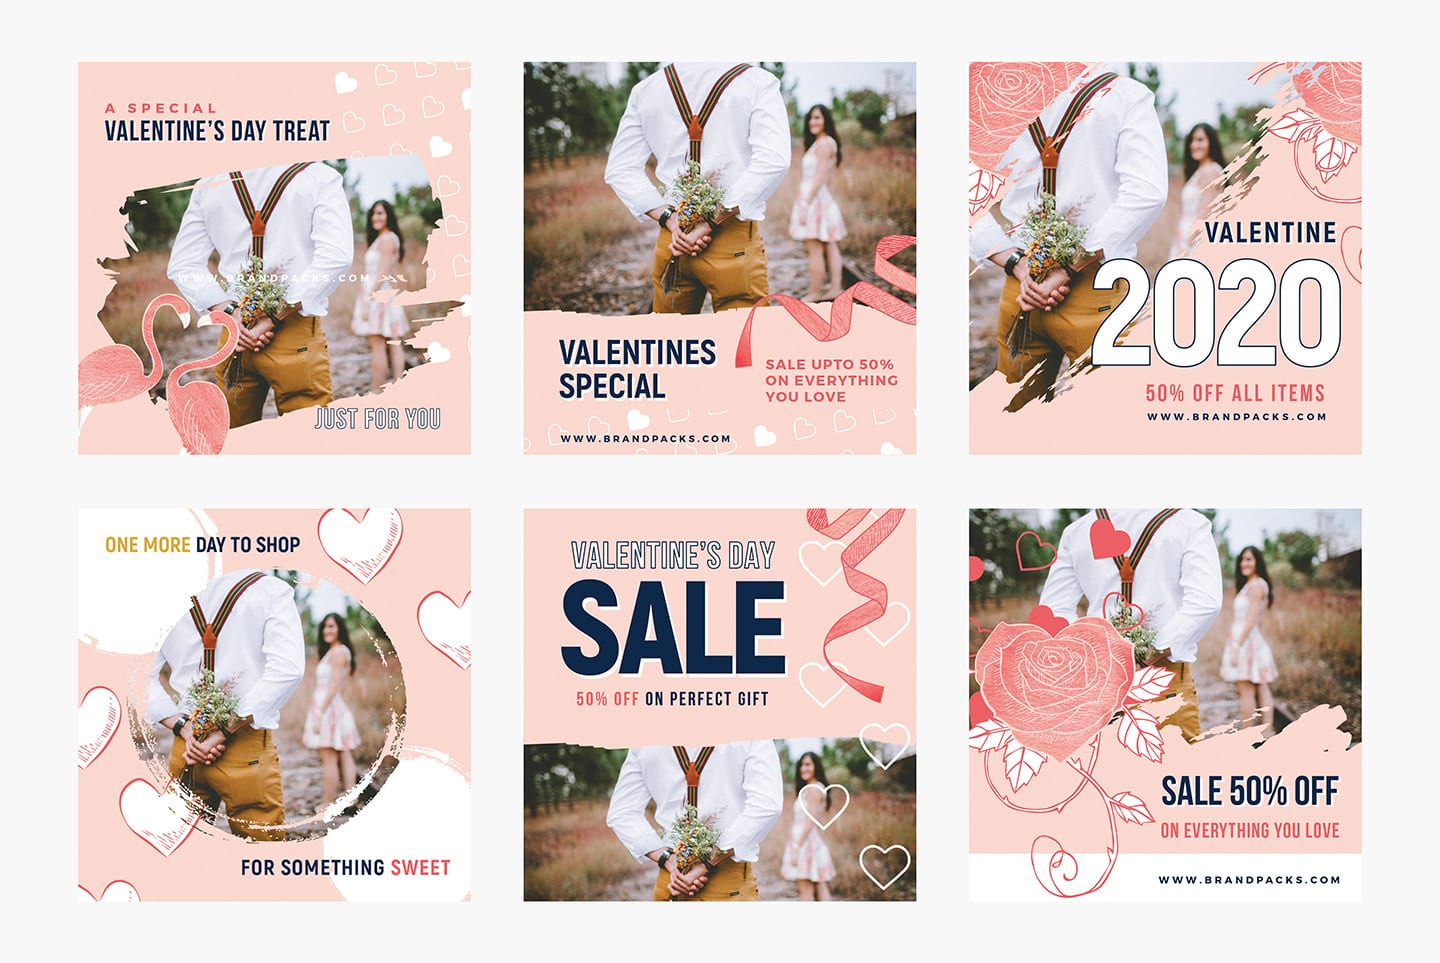 Valentine's Day Instagram Templates